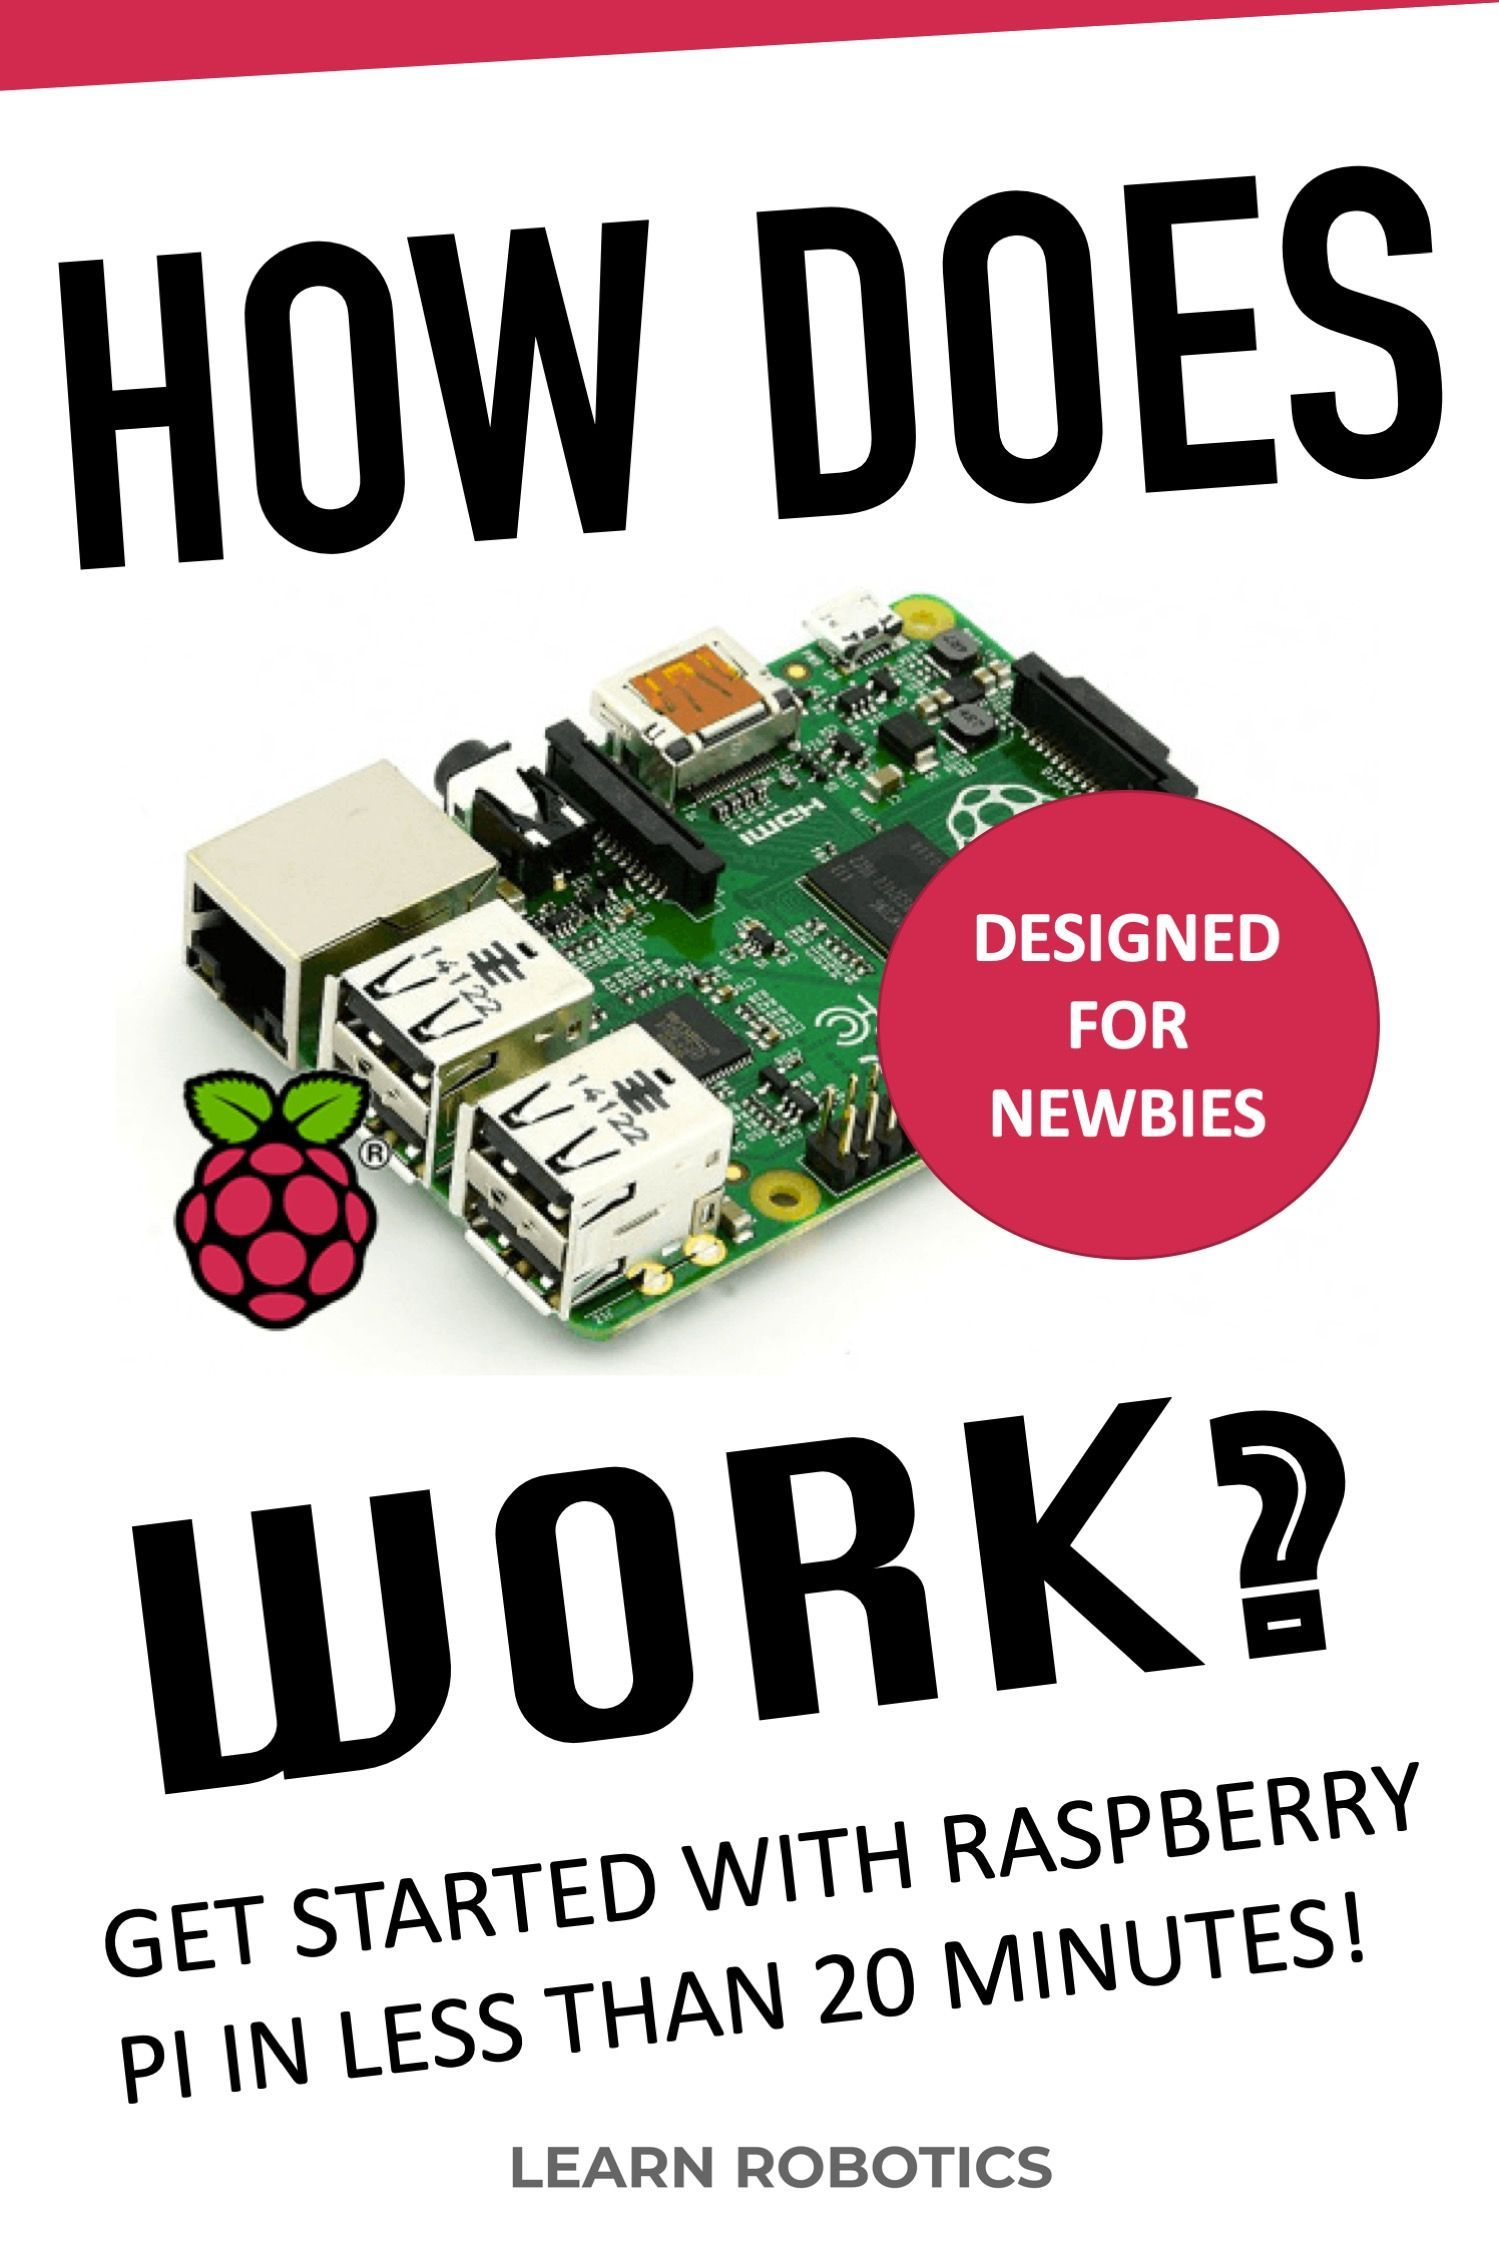 Learn how to unbox, setup, and boot up your Raspberry Pi. We'll show you how to get started with the Pi so that you can create Robotics and Tech projects.